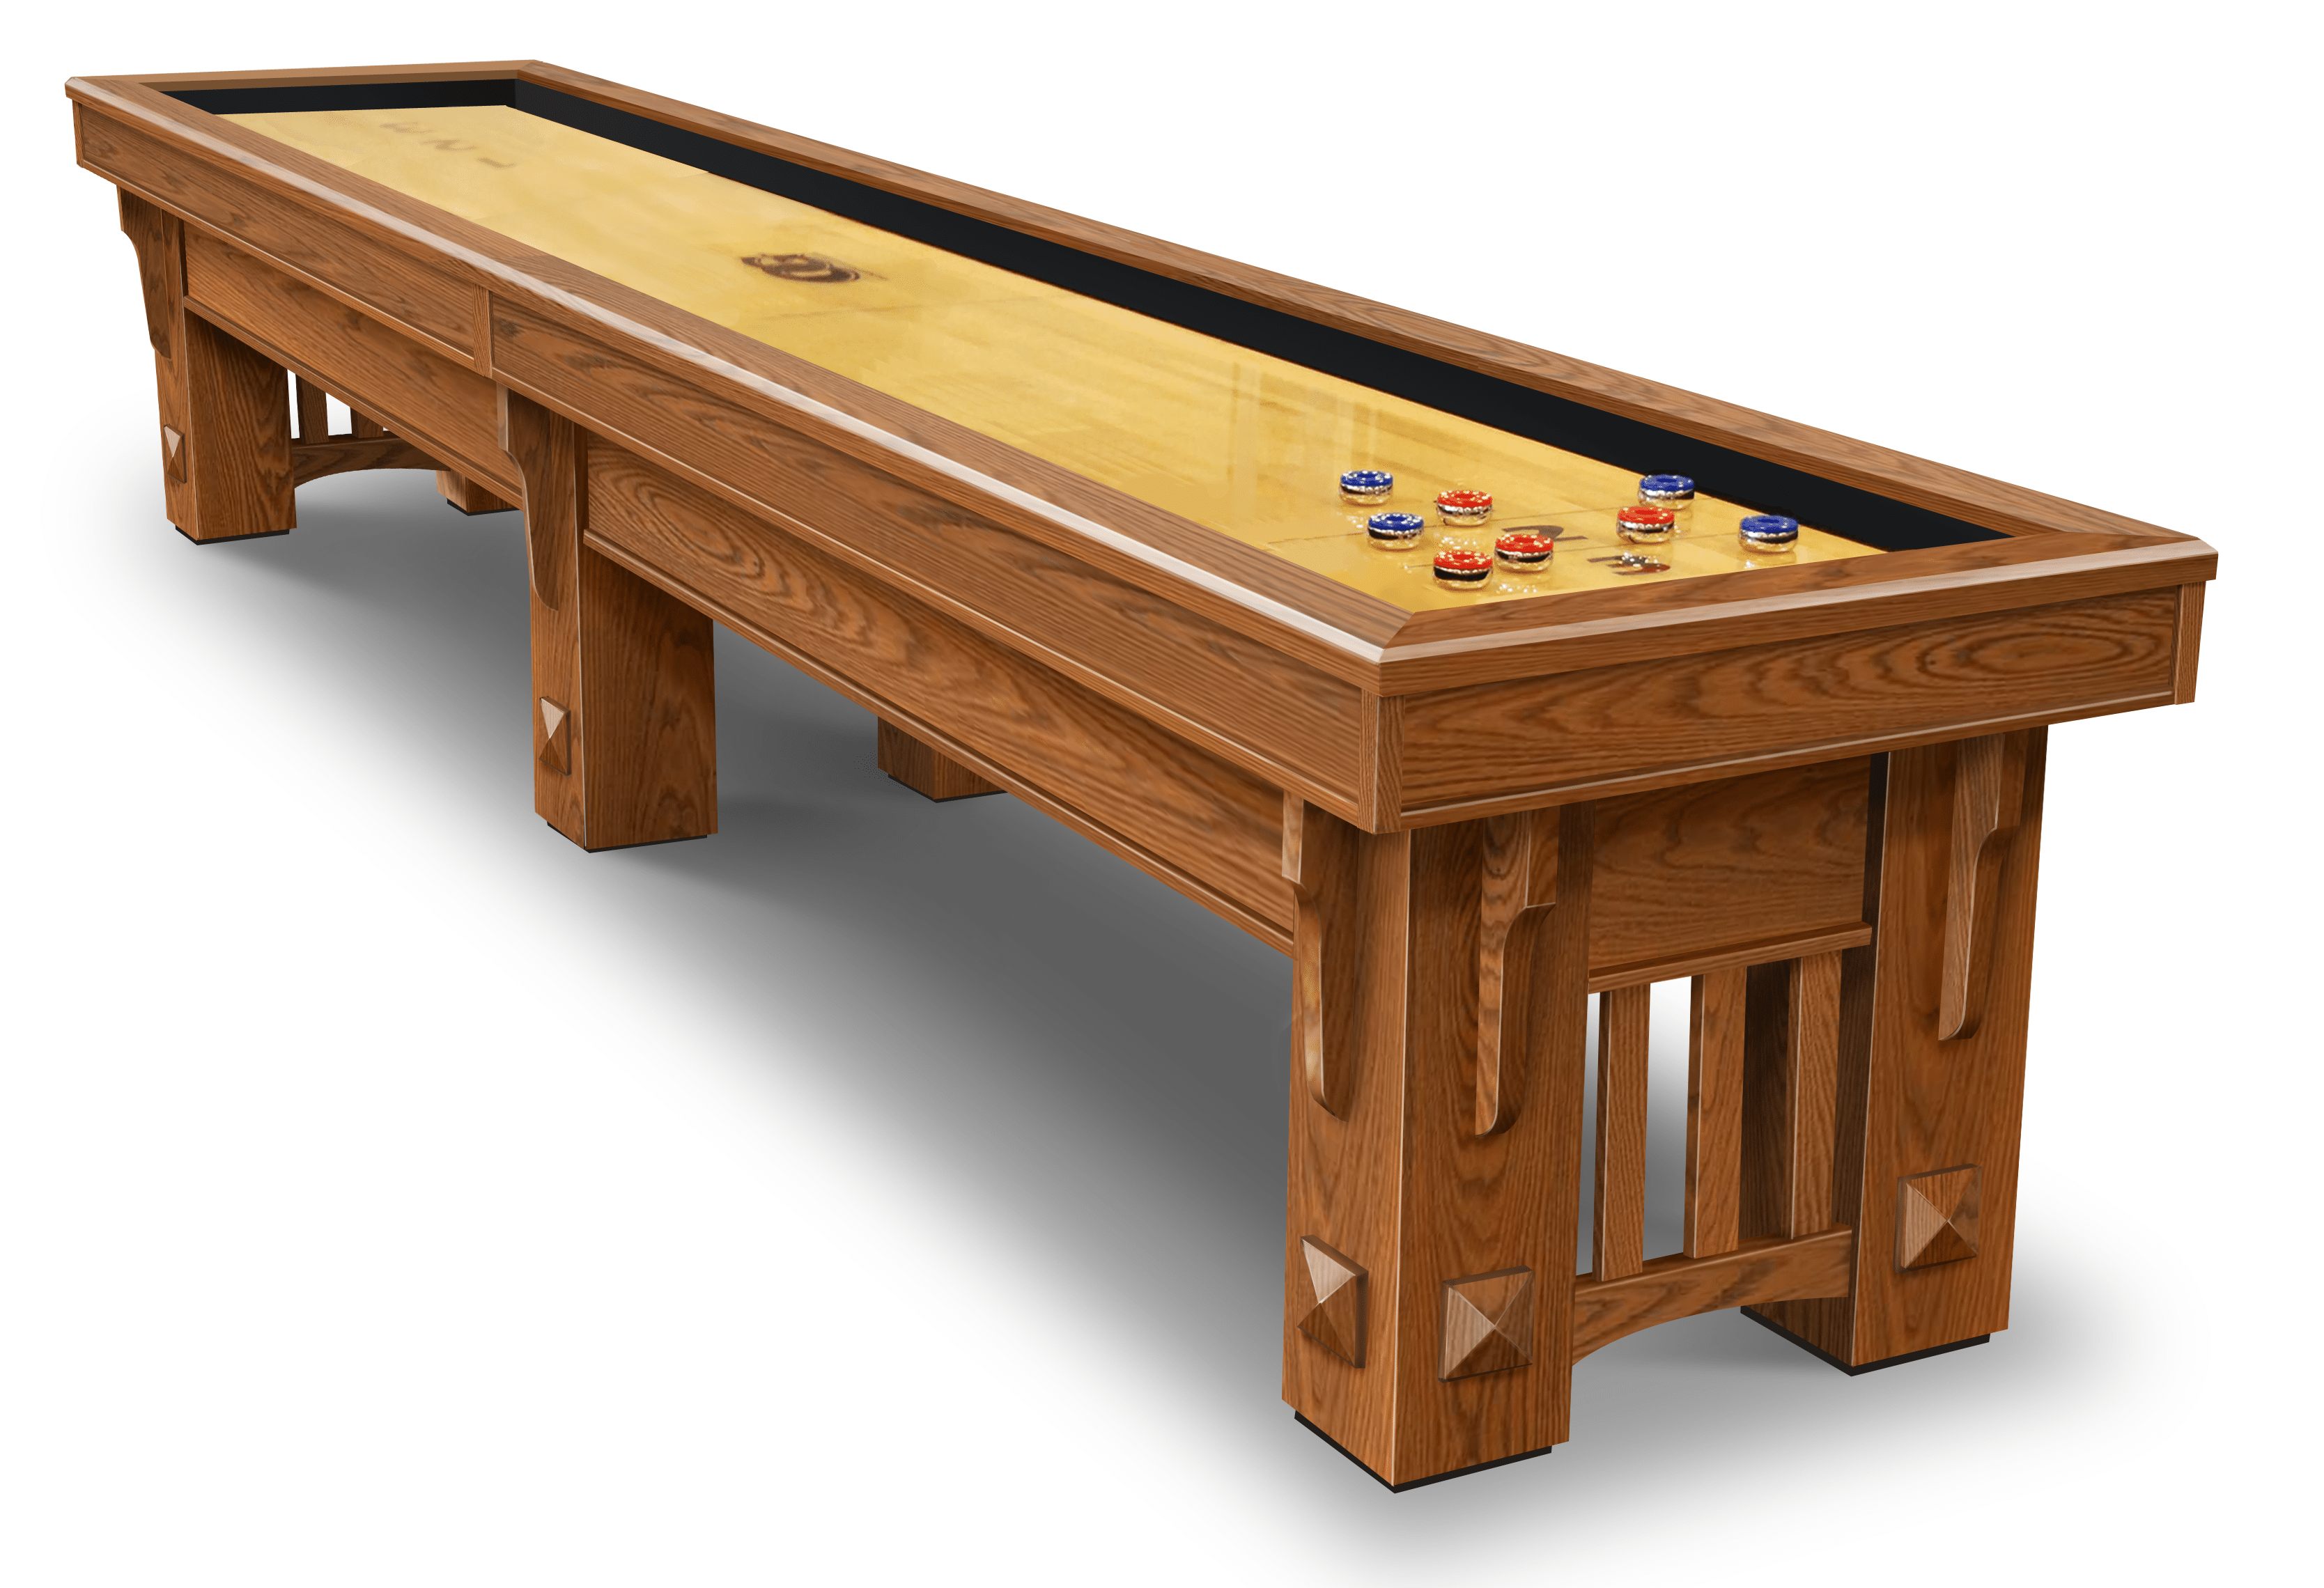 sale game regulation shuffleboard tips for shuffleboa fun awesome home ft ideas well universal used rules table indoor